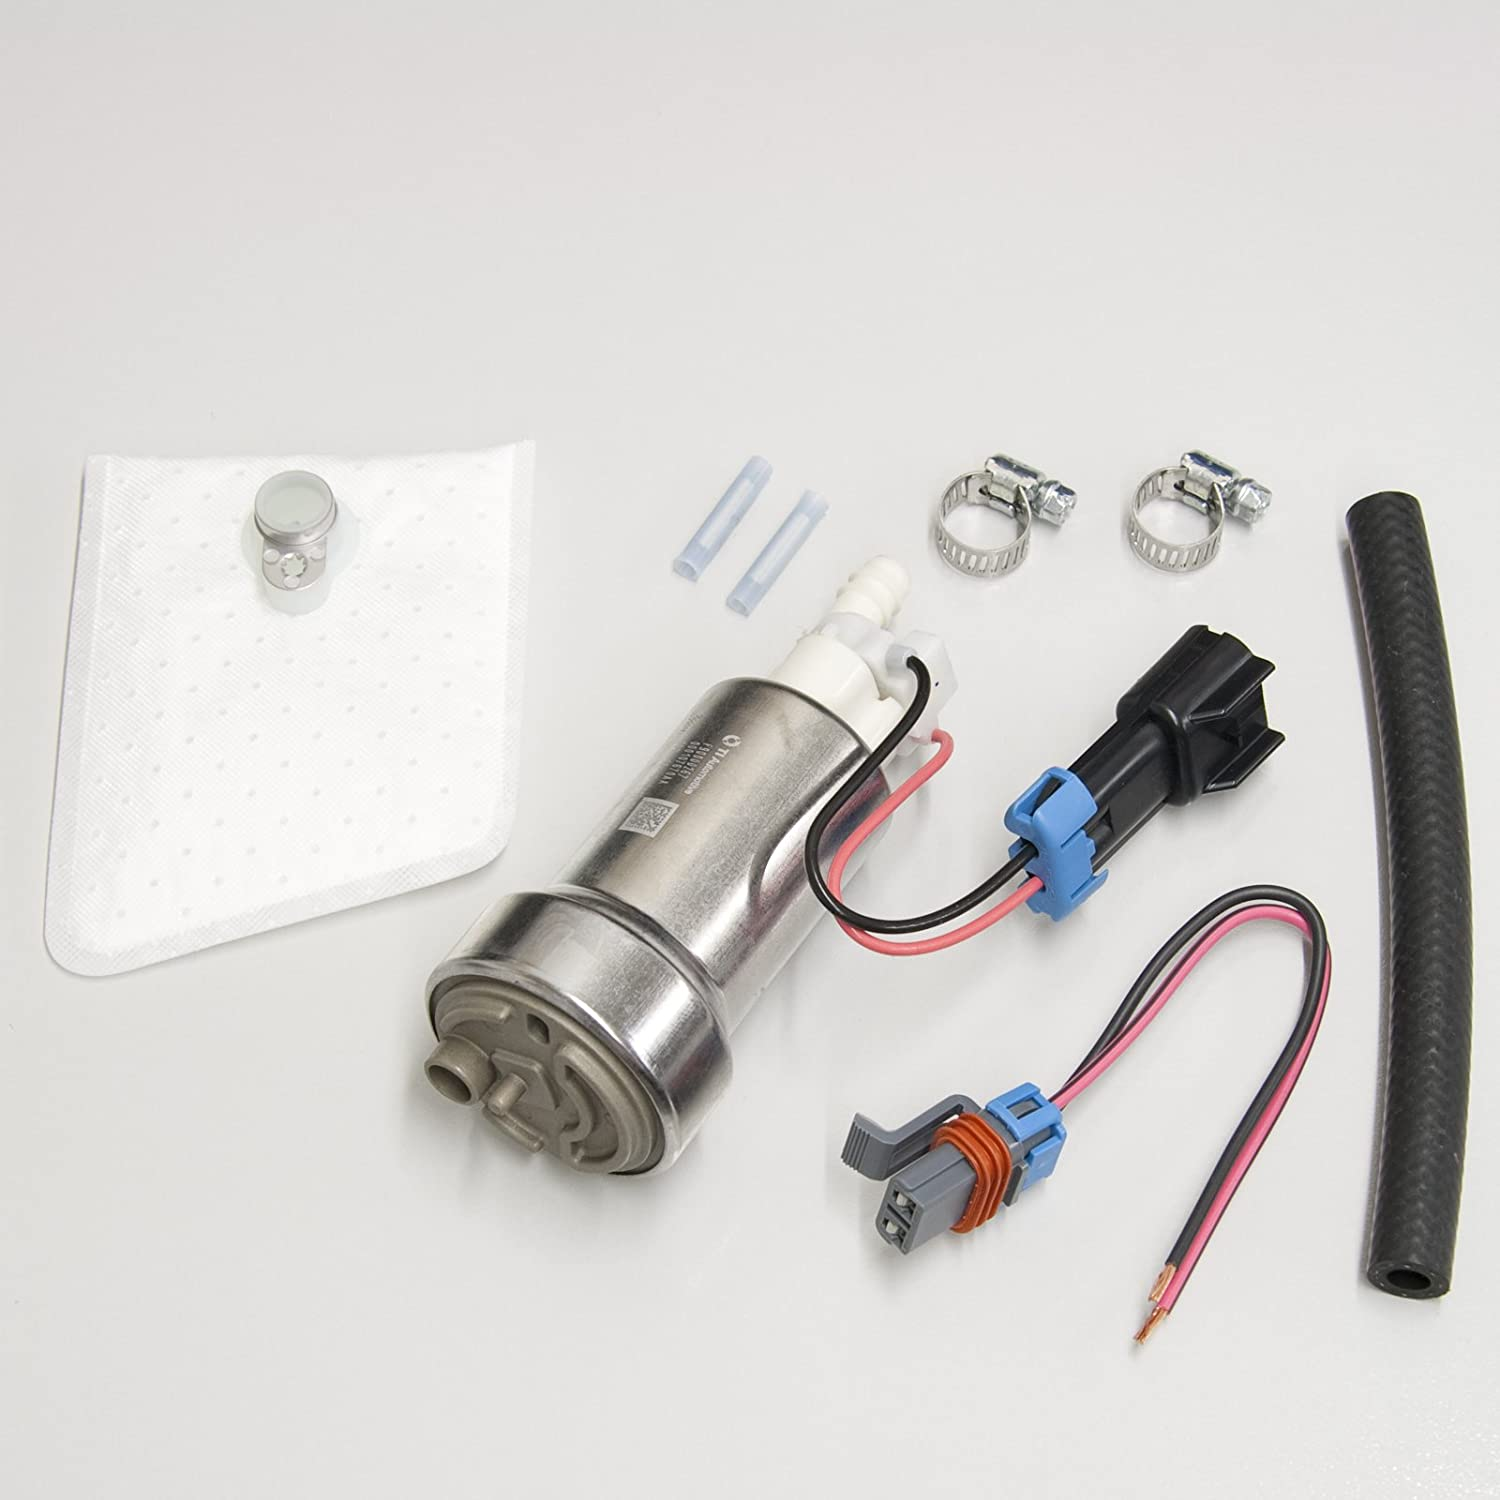 71wdj0eld0L._SL1500_ amazon com fuel pumps & accessories fuel system automotive  at bakdesigns.co